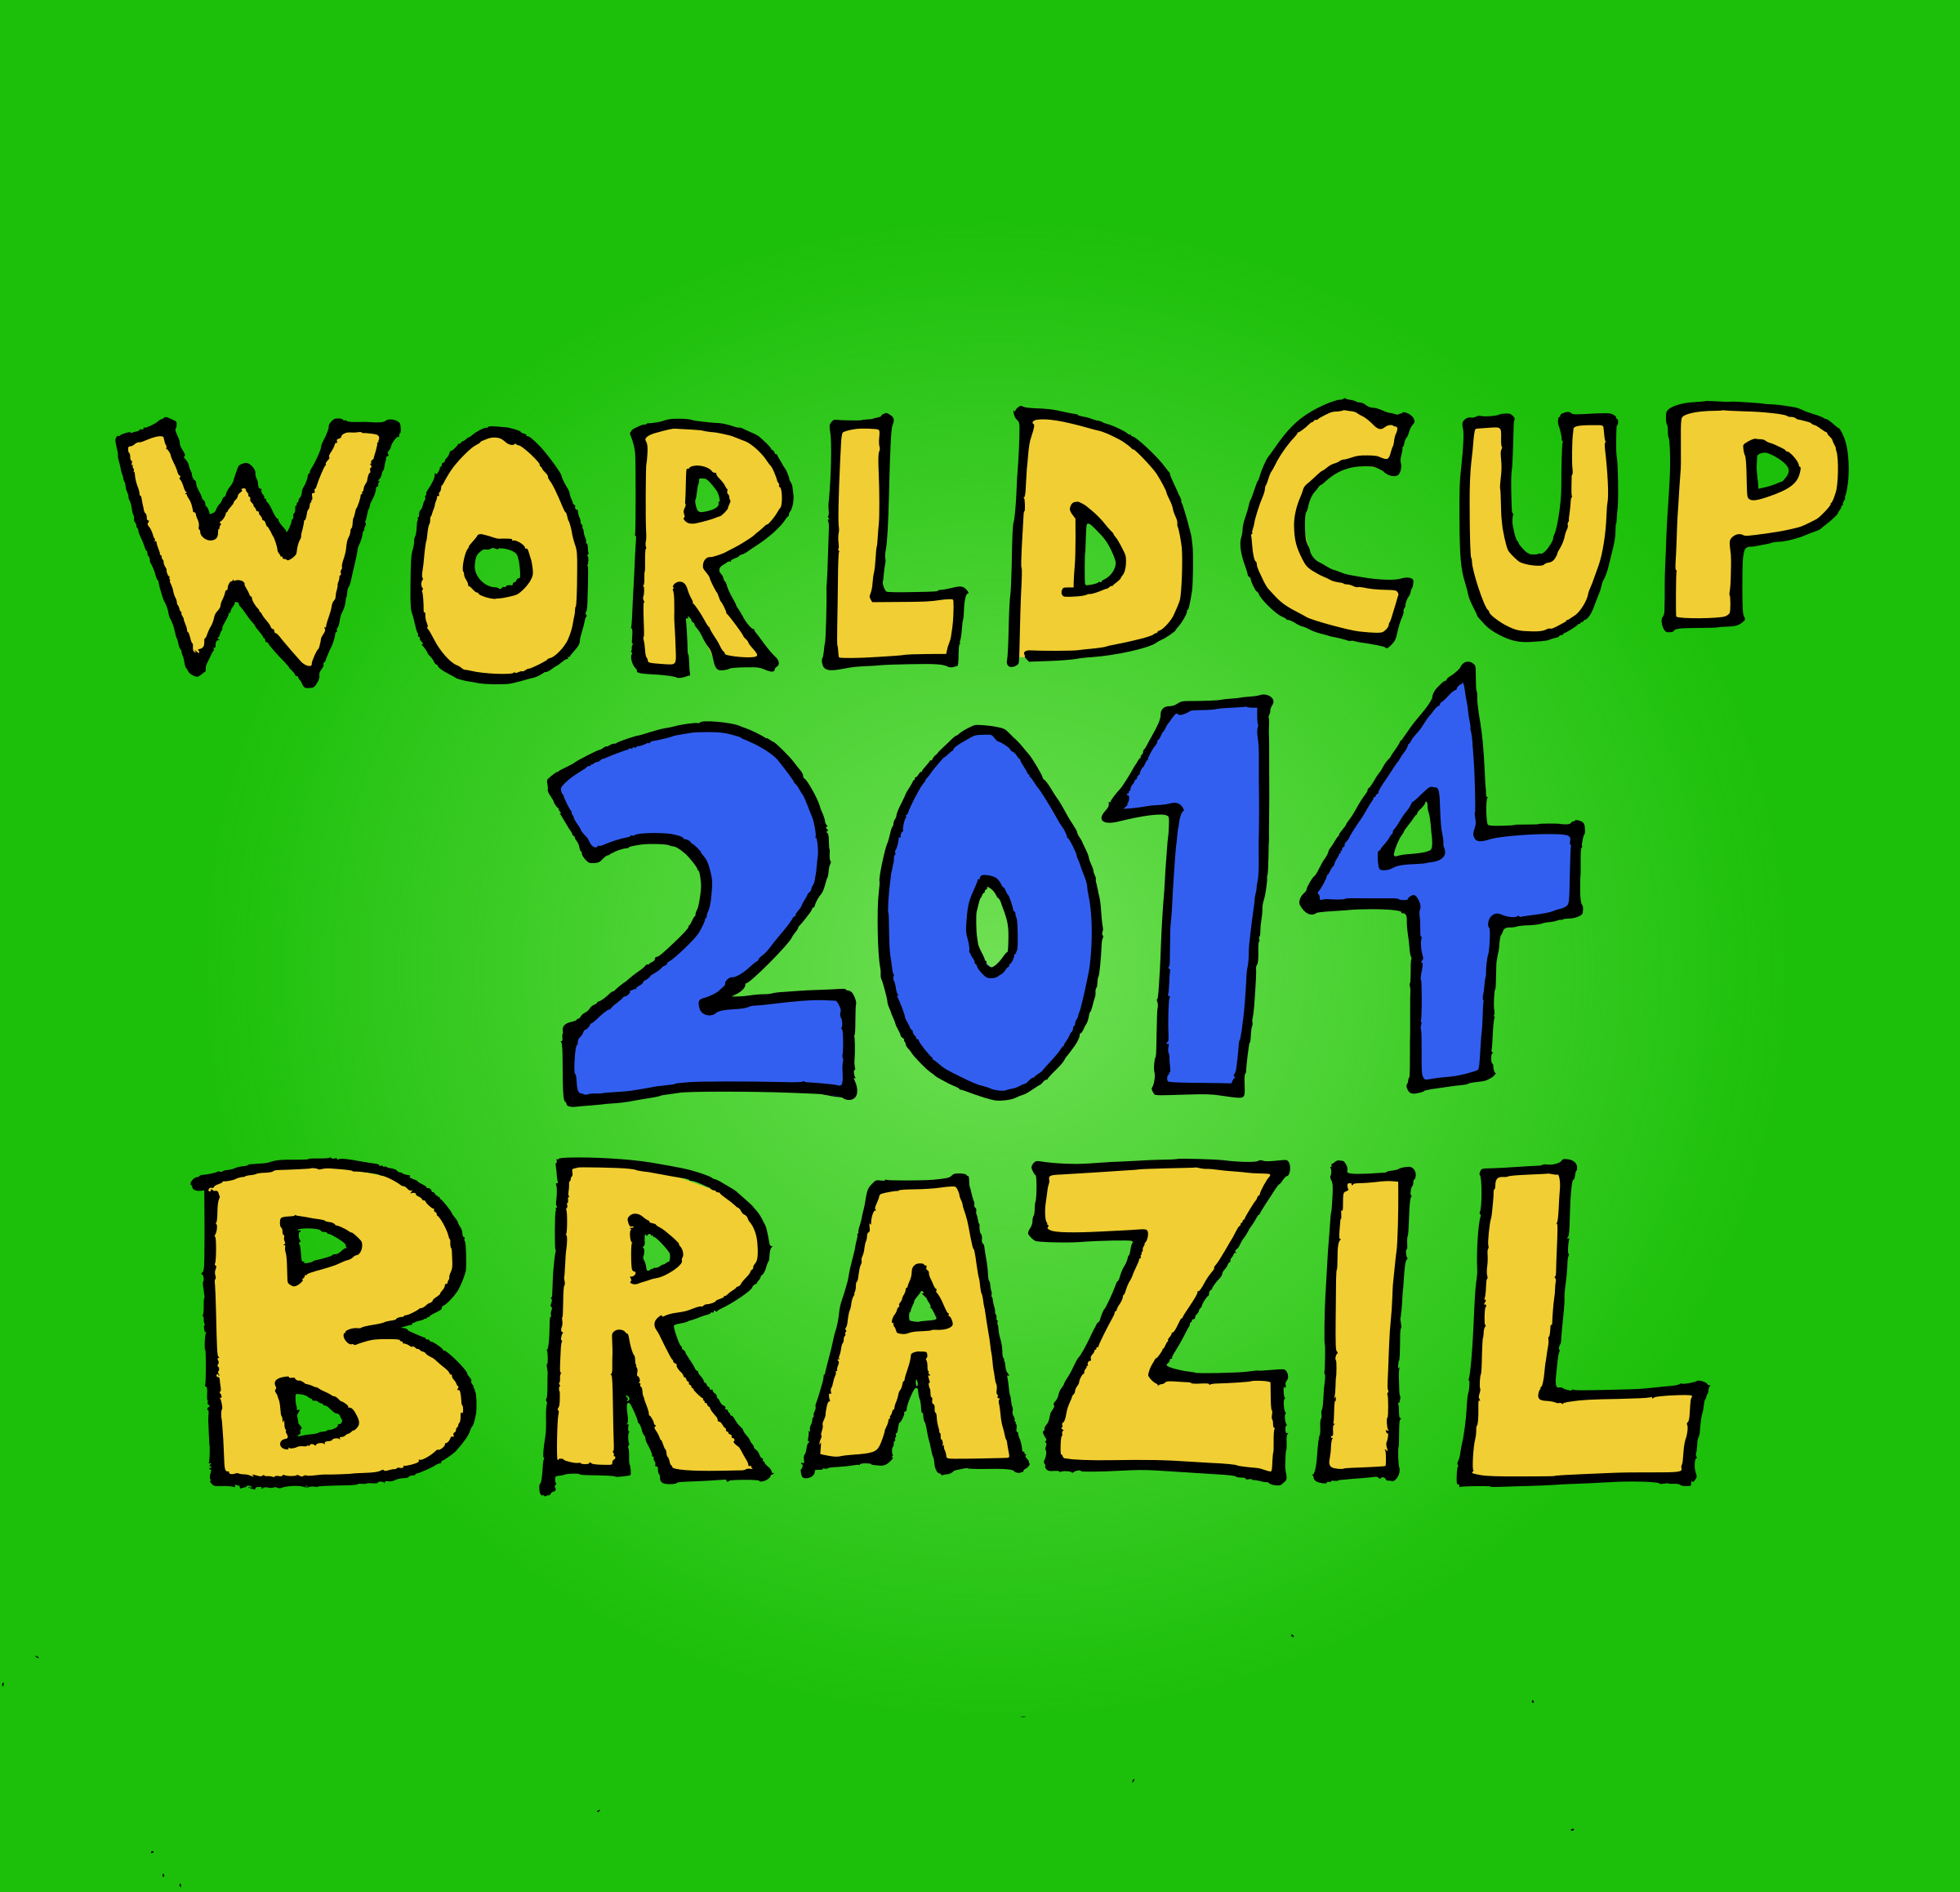 World Cup 2014 in Brazil by j4p4n